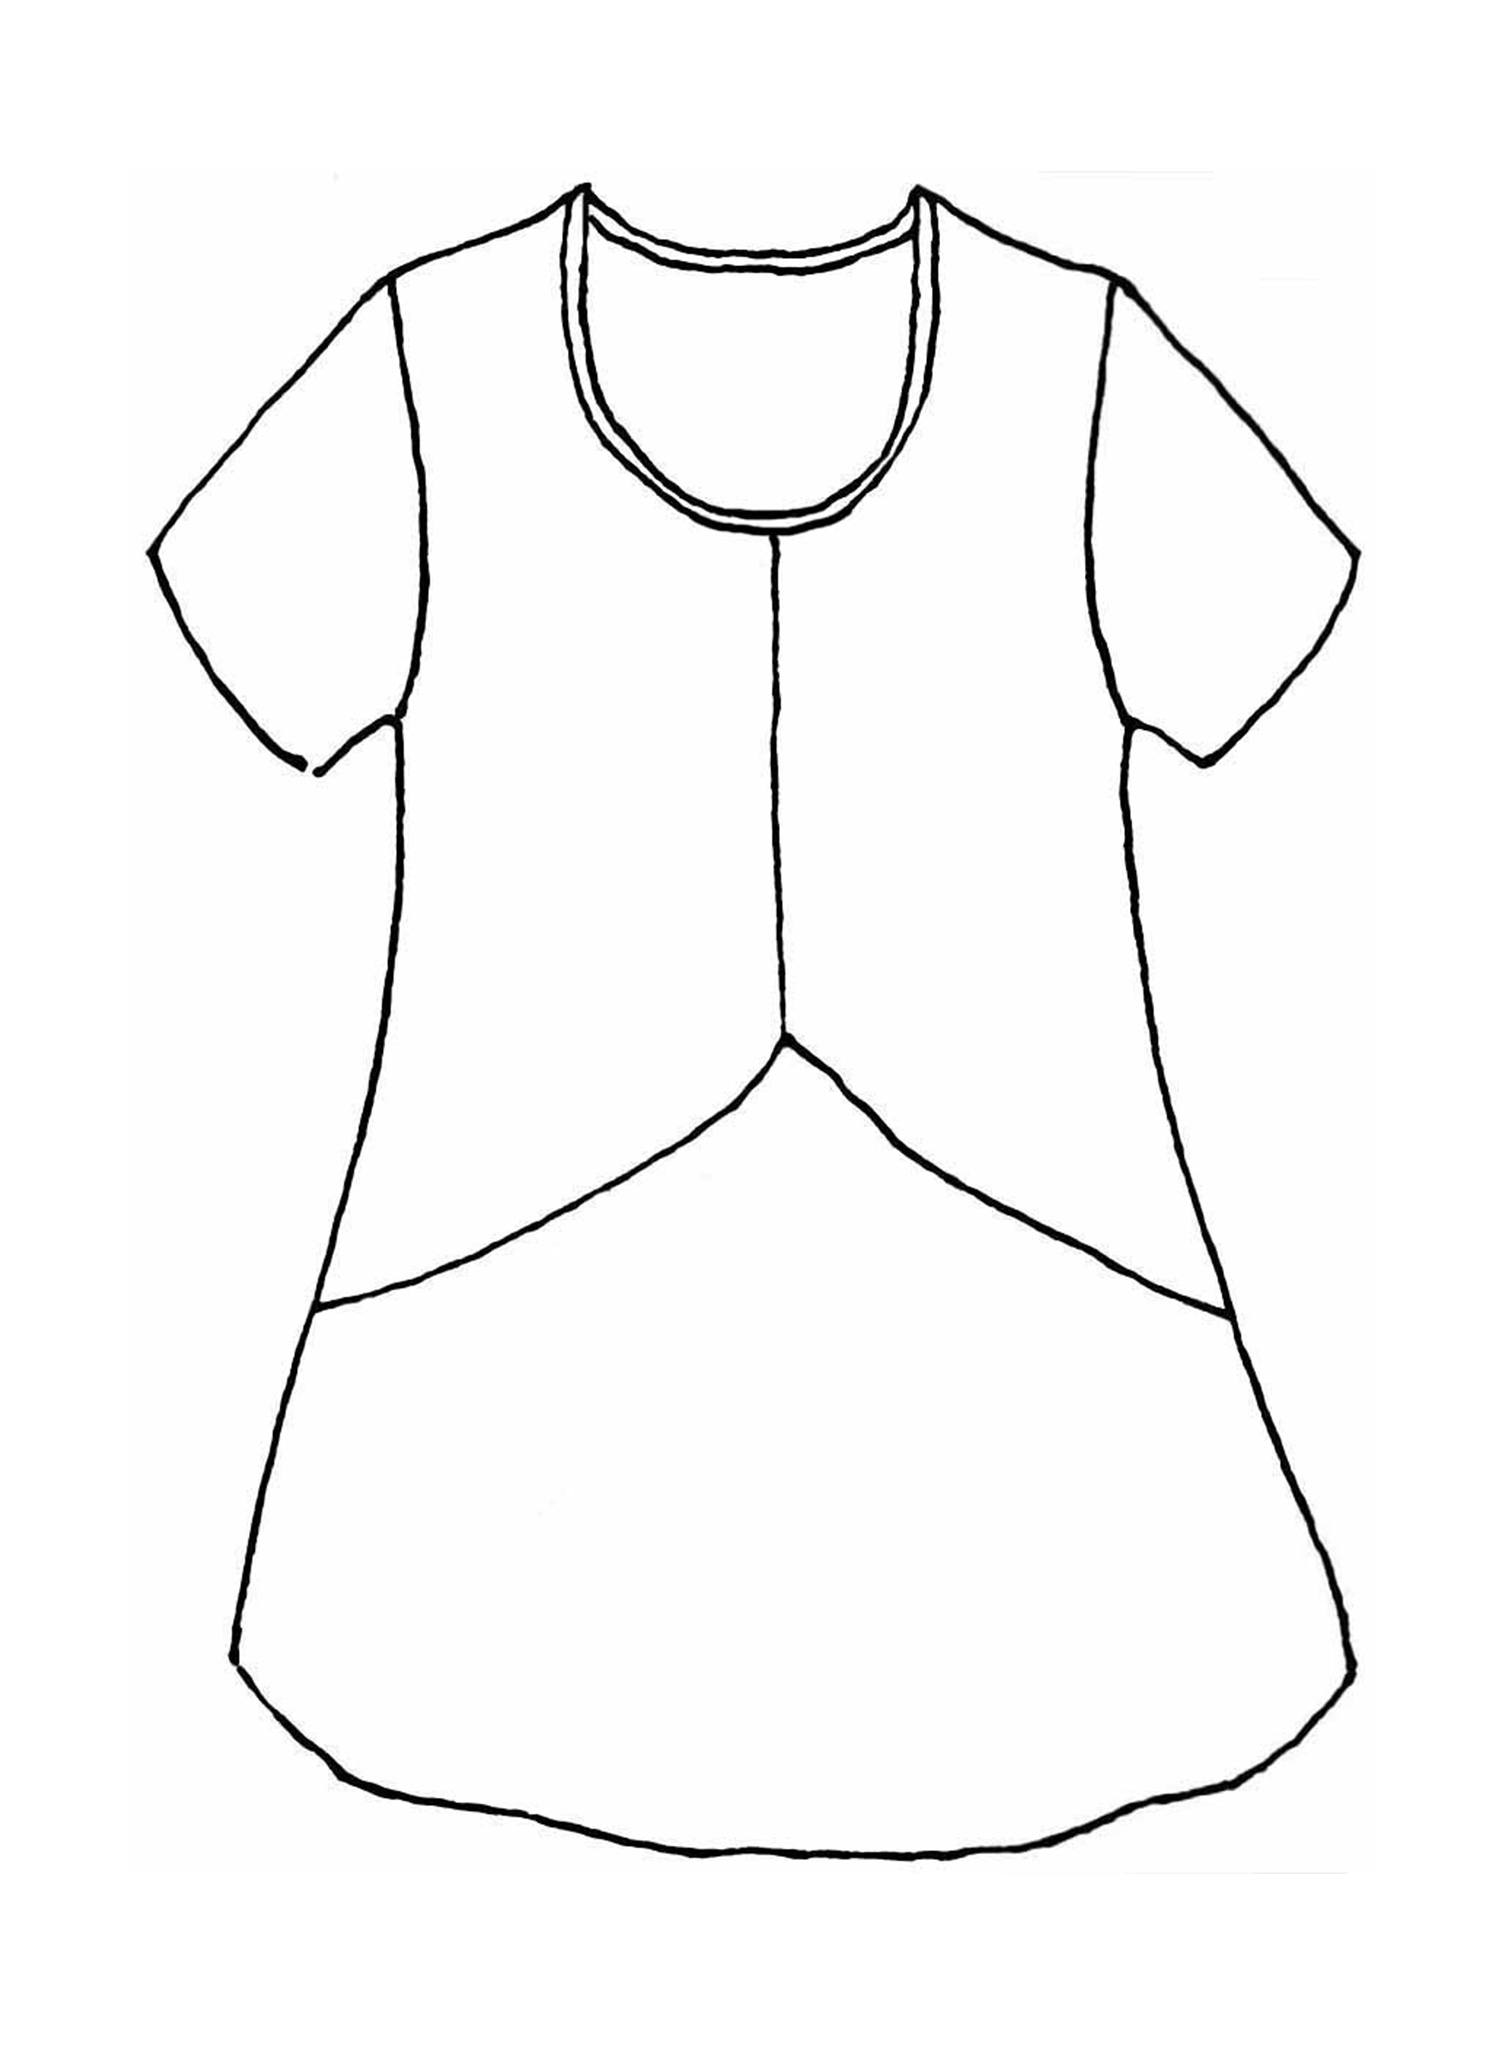 Simplest Tee sketch image